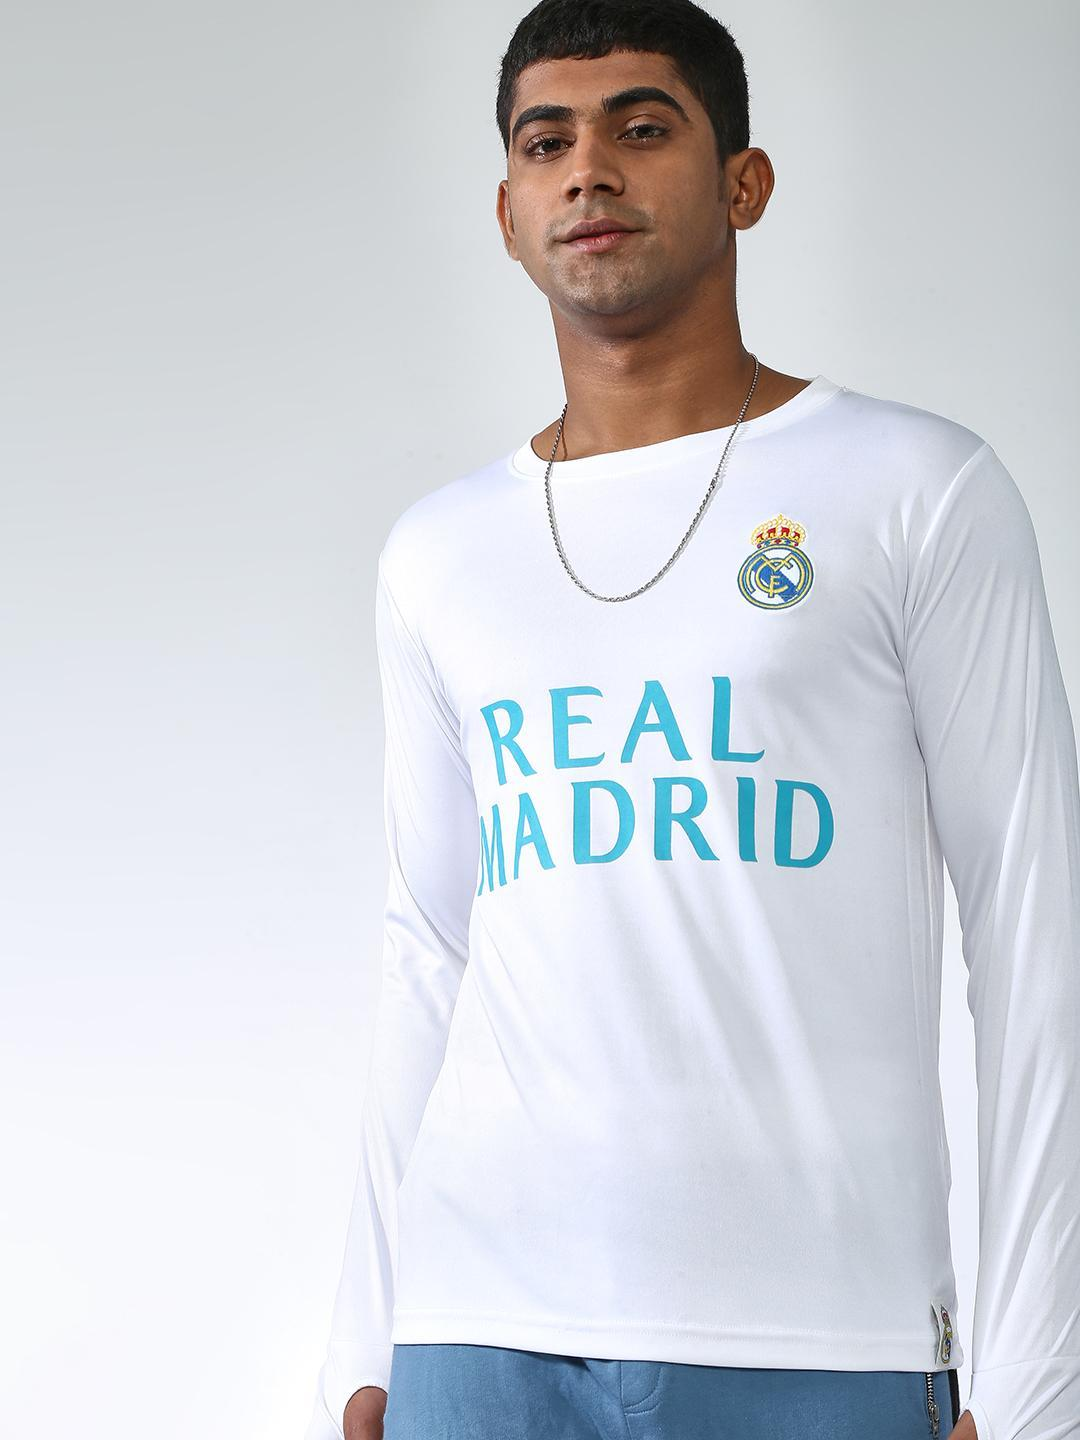 REAL MADRID White Placement Print T-shirt 1